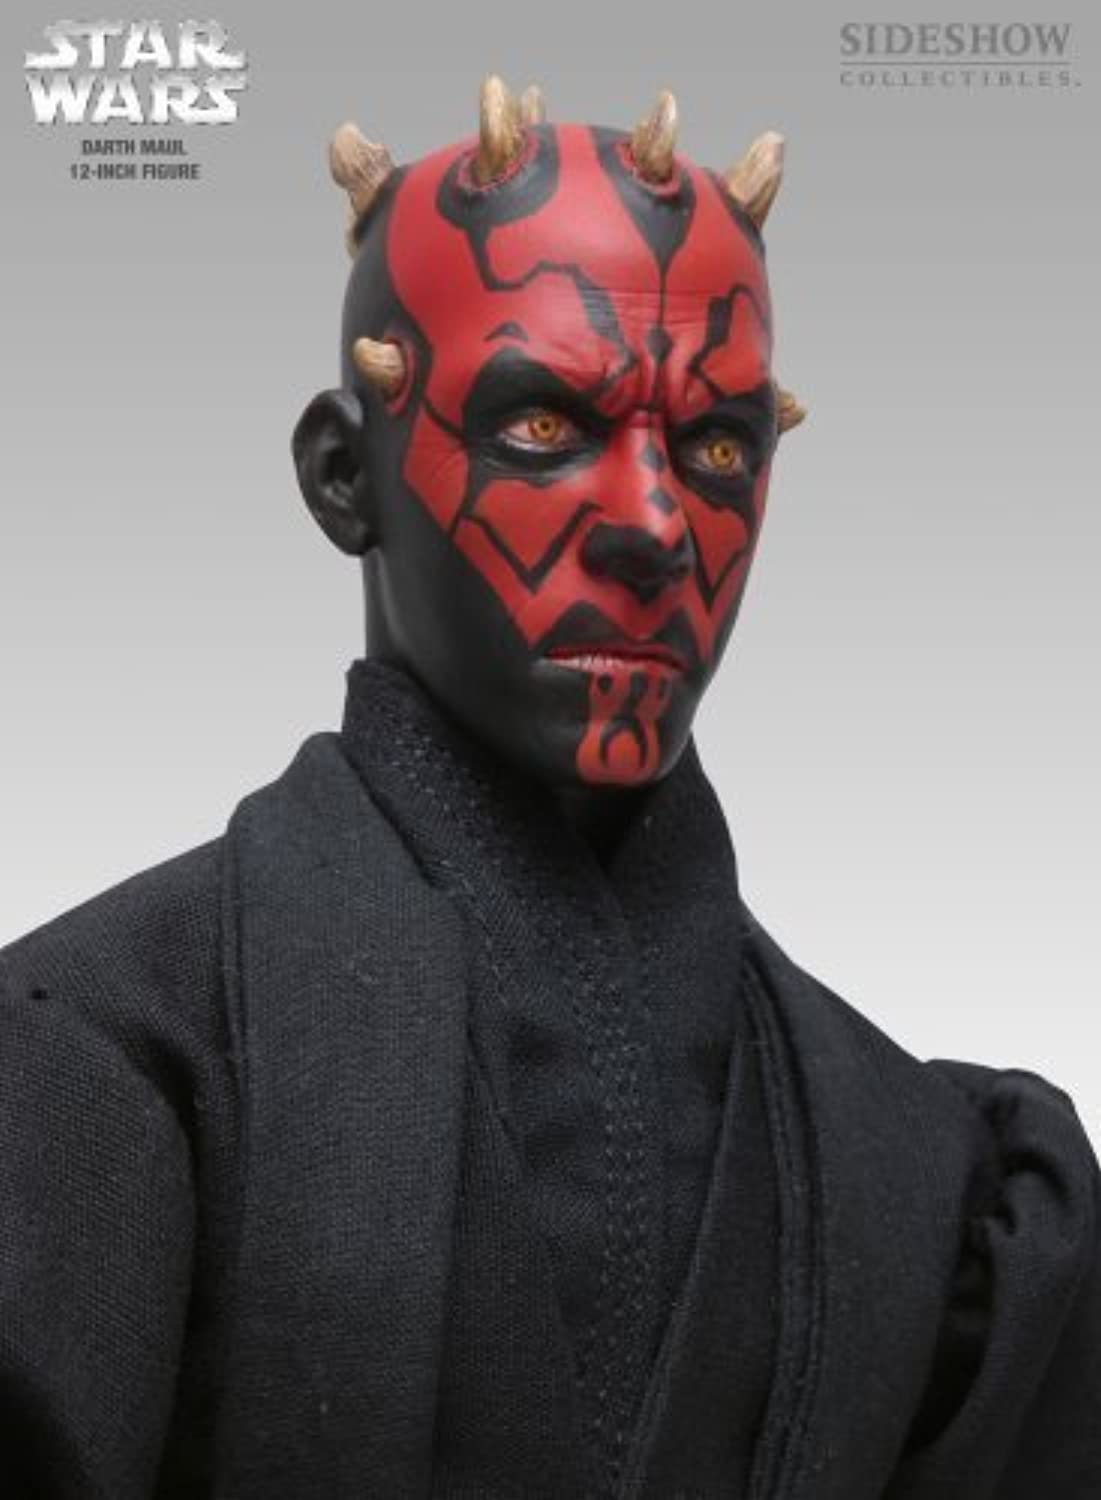 Star Wars 12  Darth Maul Action Figure by Sideshow Collectibles by Sideshow Toys